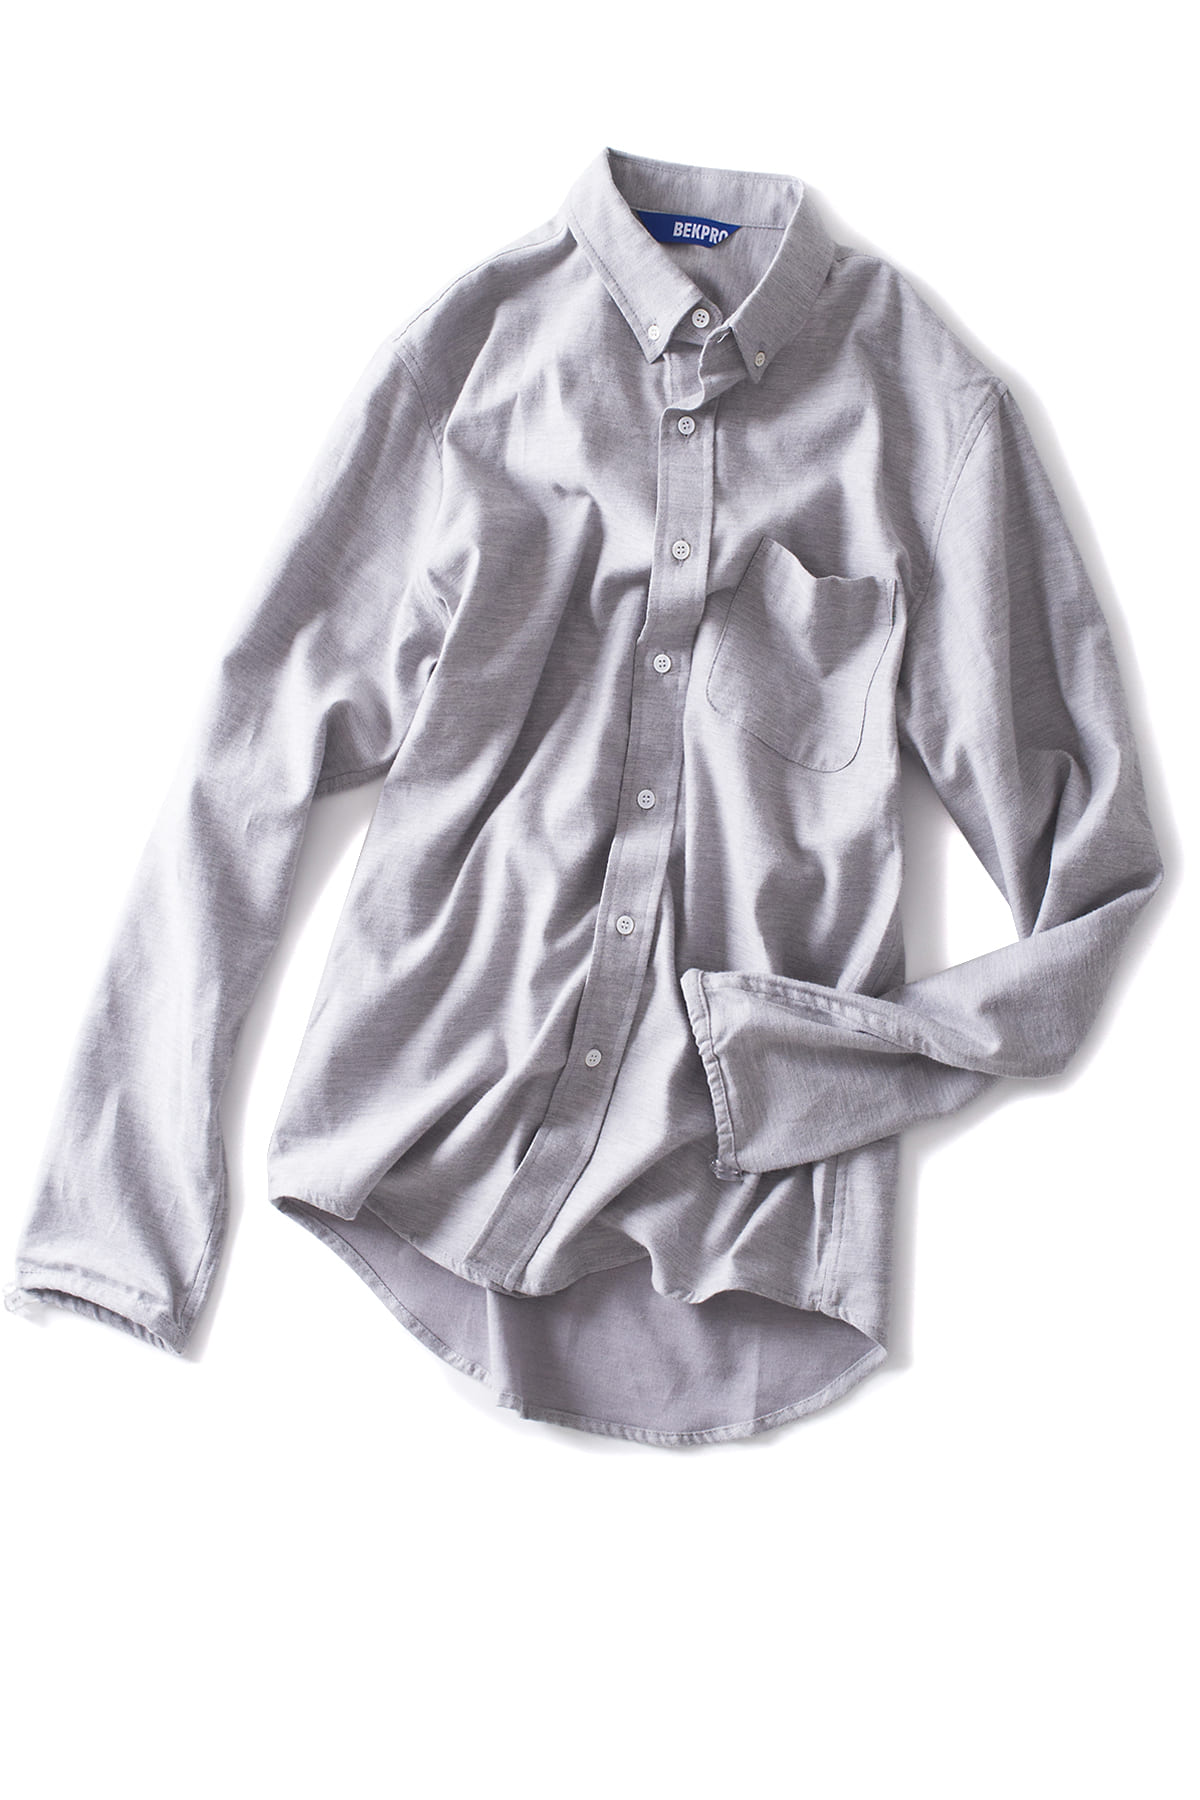 BEKPRO : L/S SHIRT (Grey)